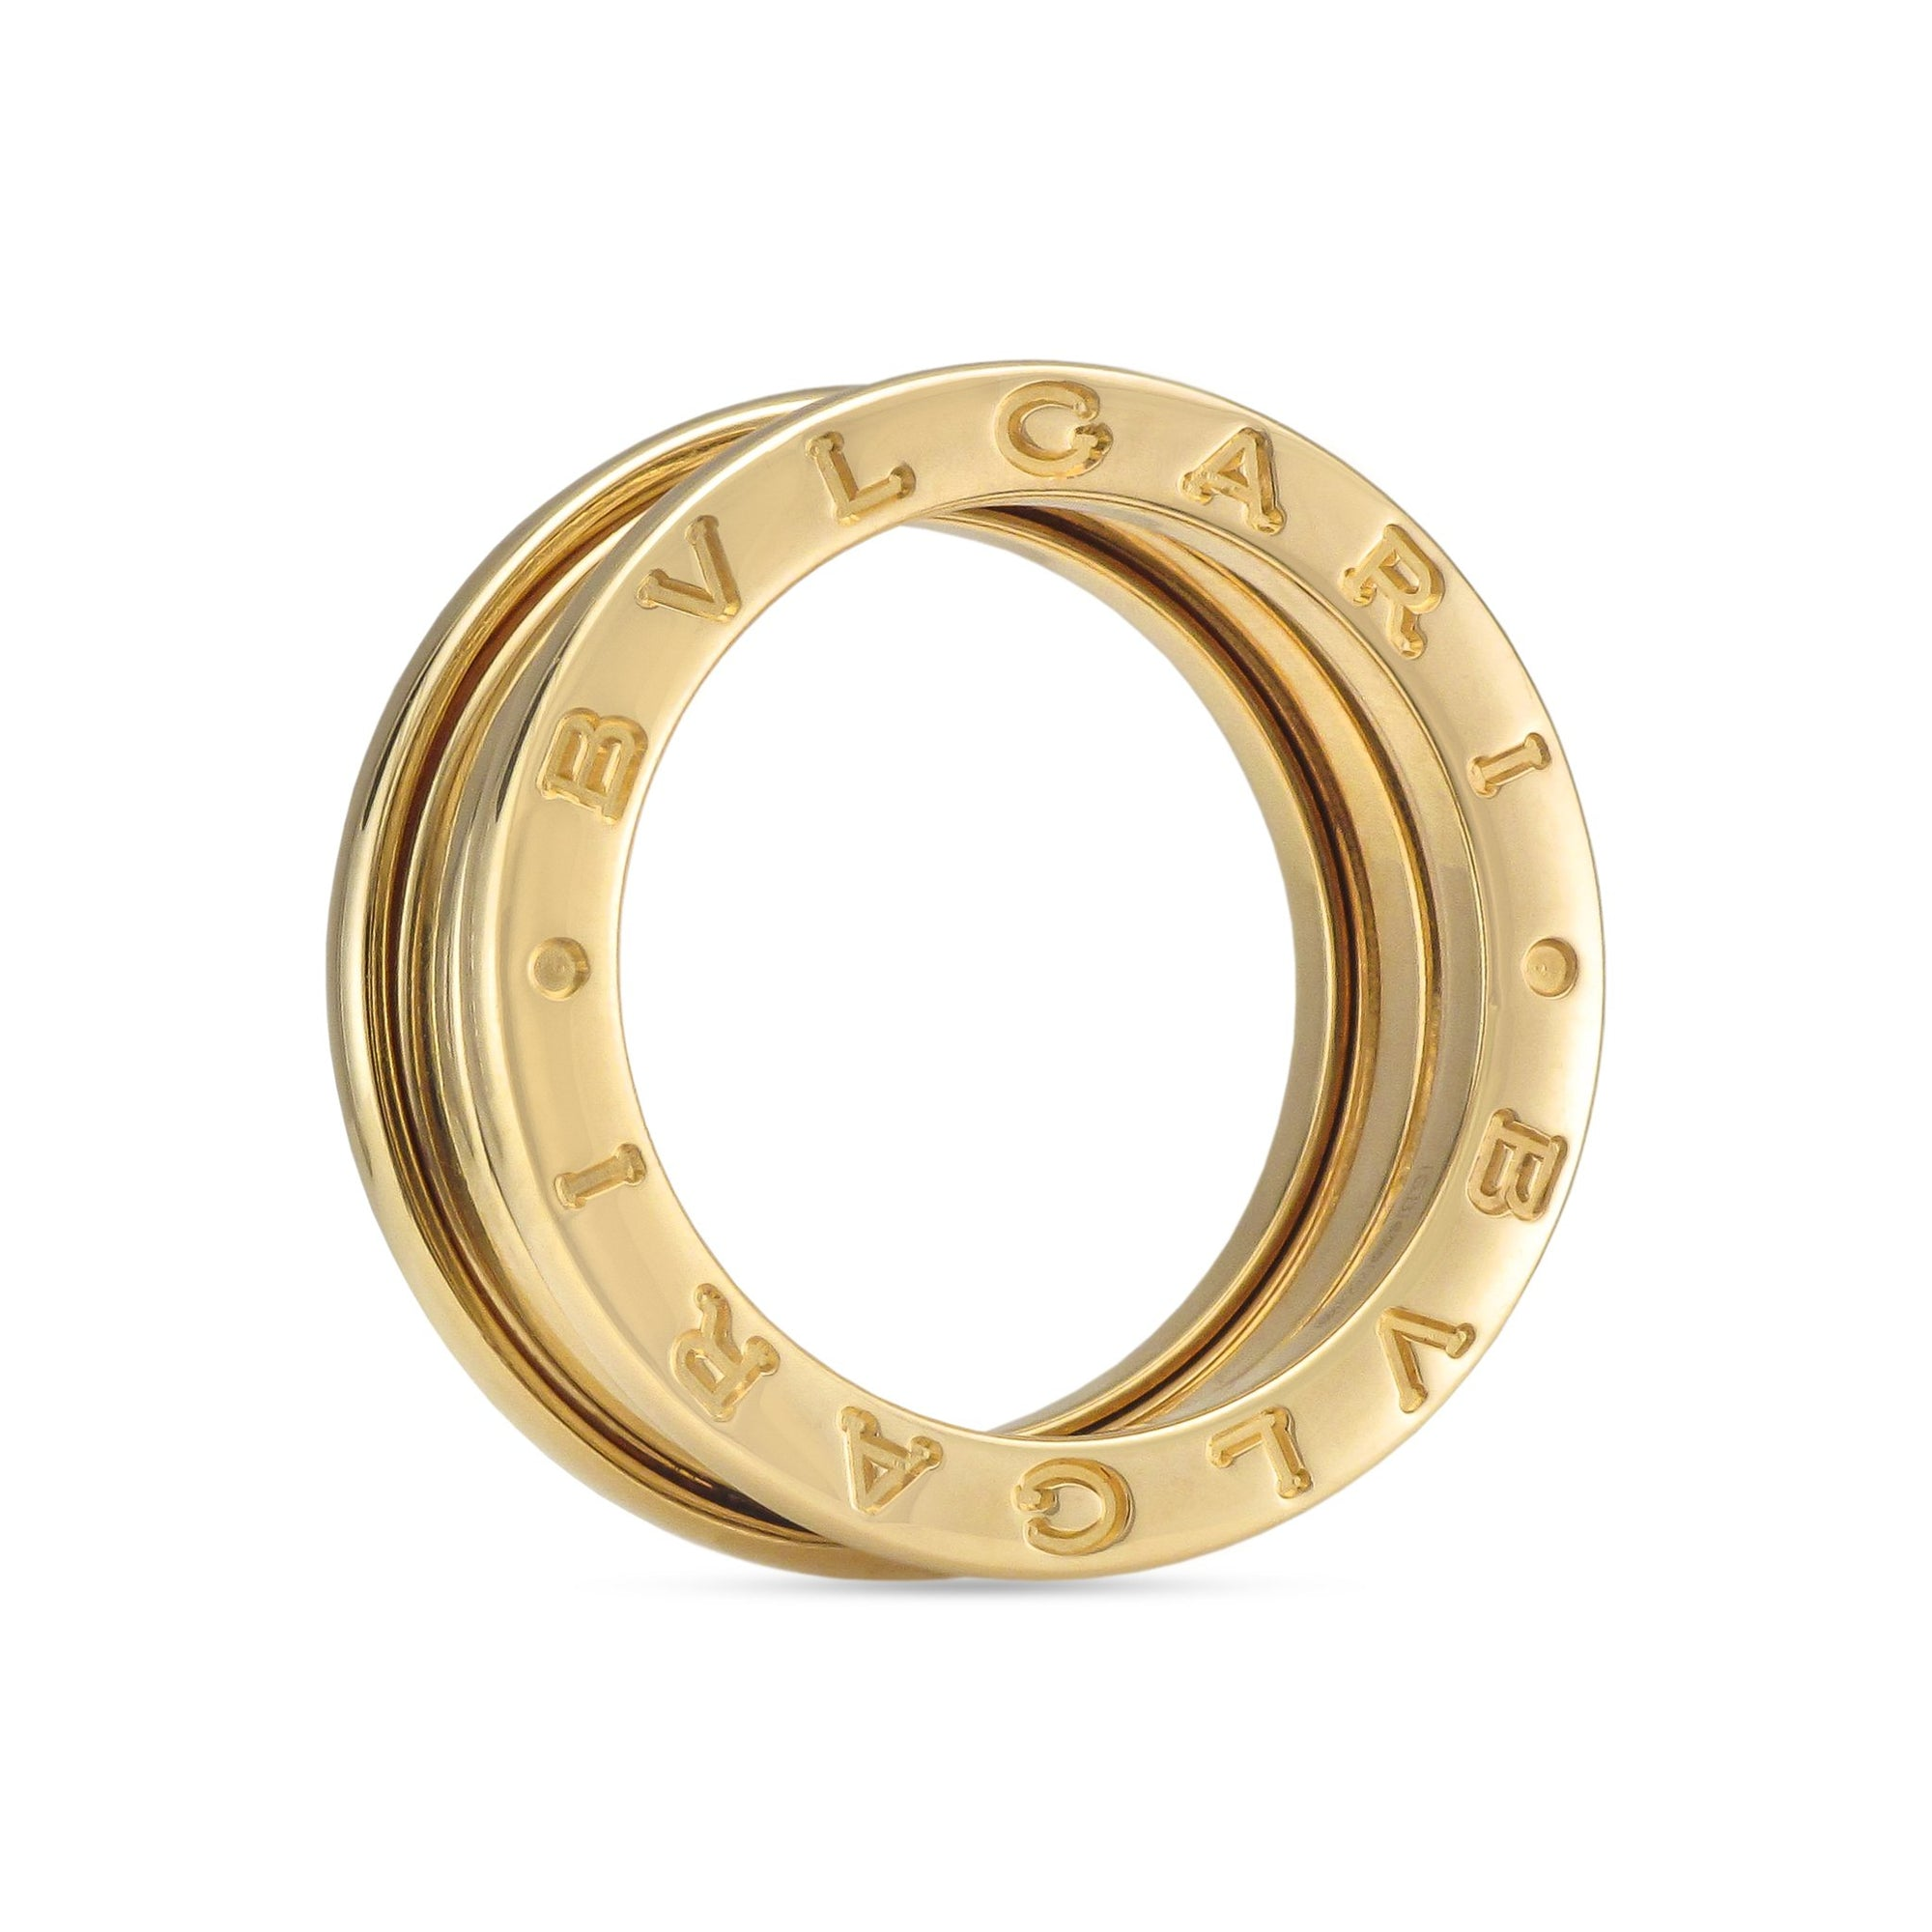 Bvlgari B.Zero1 18ct Yellow Gold Ring